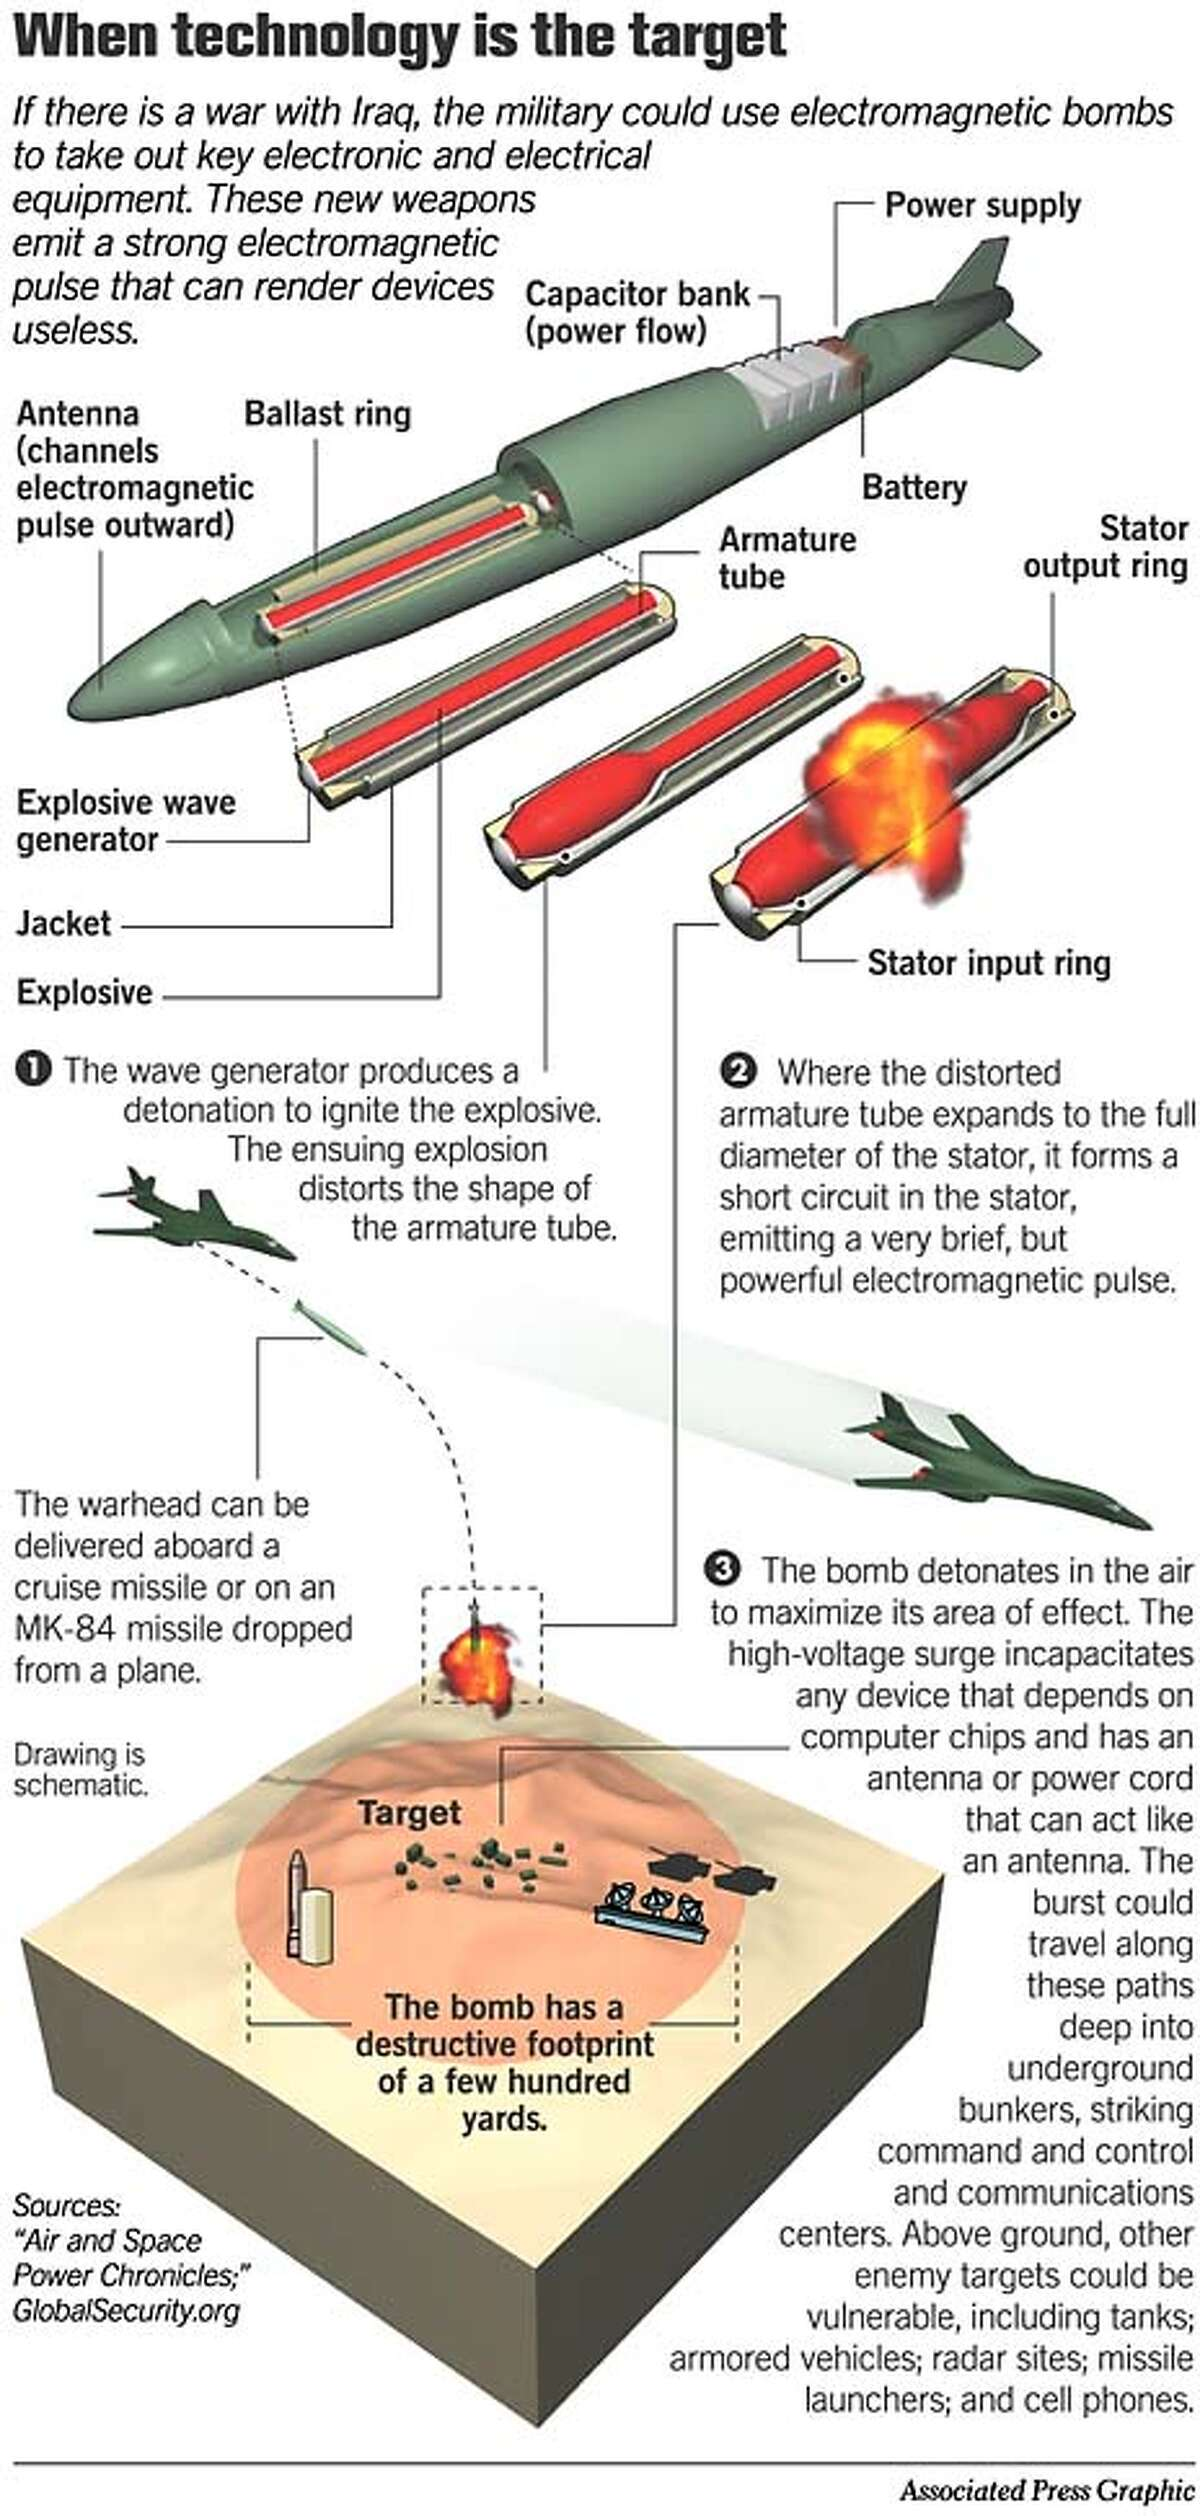 Electromagnetic Bomb. Associated Press Graphic